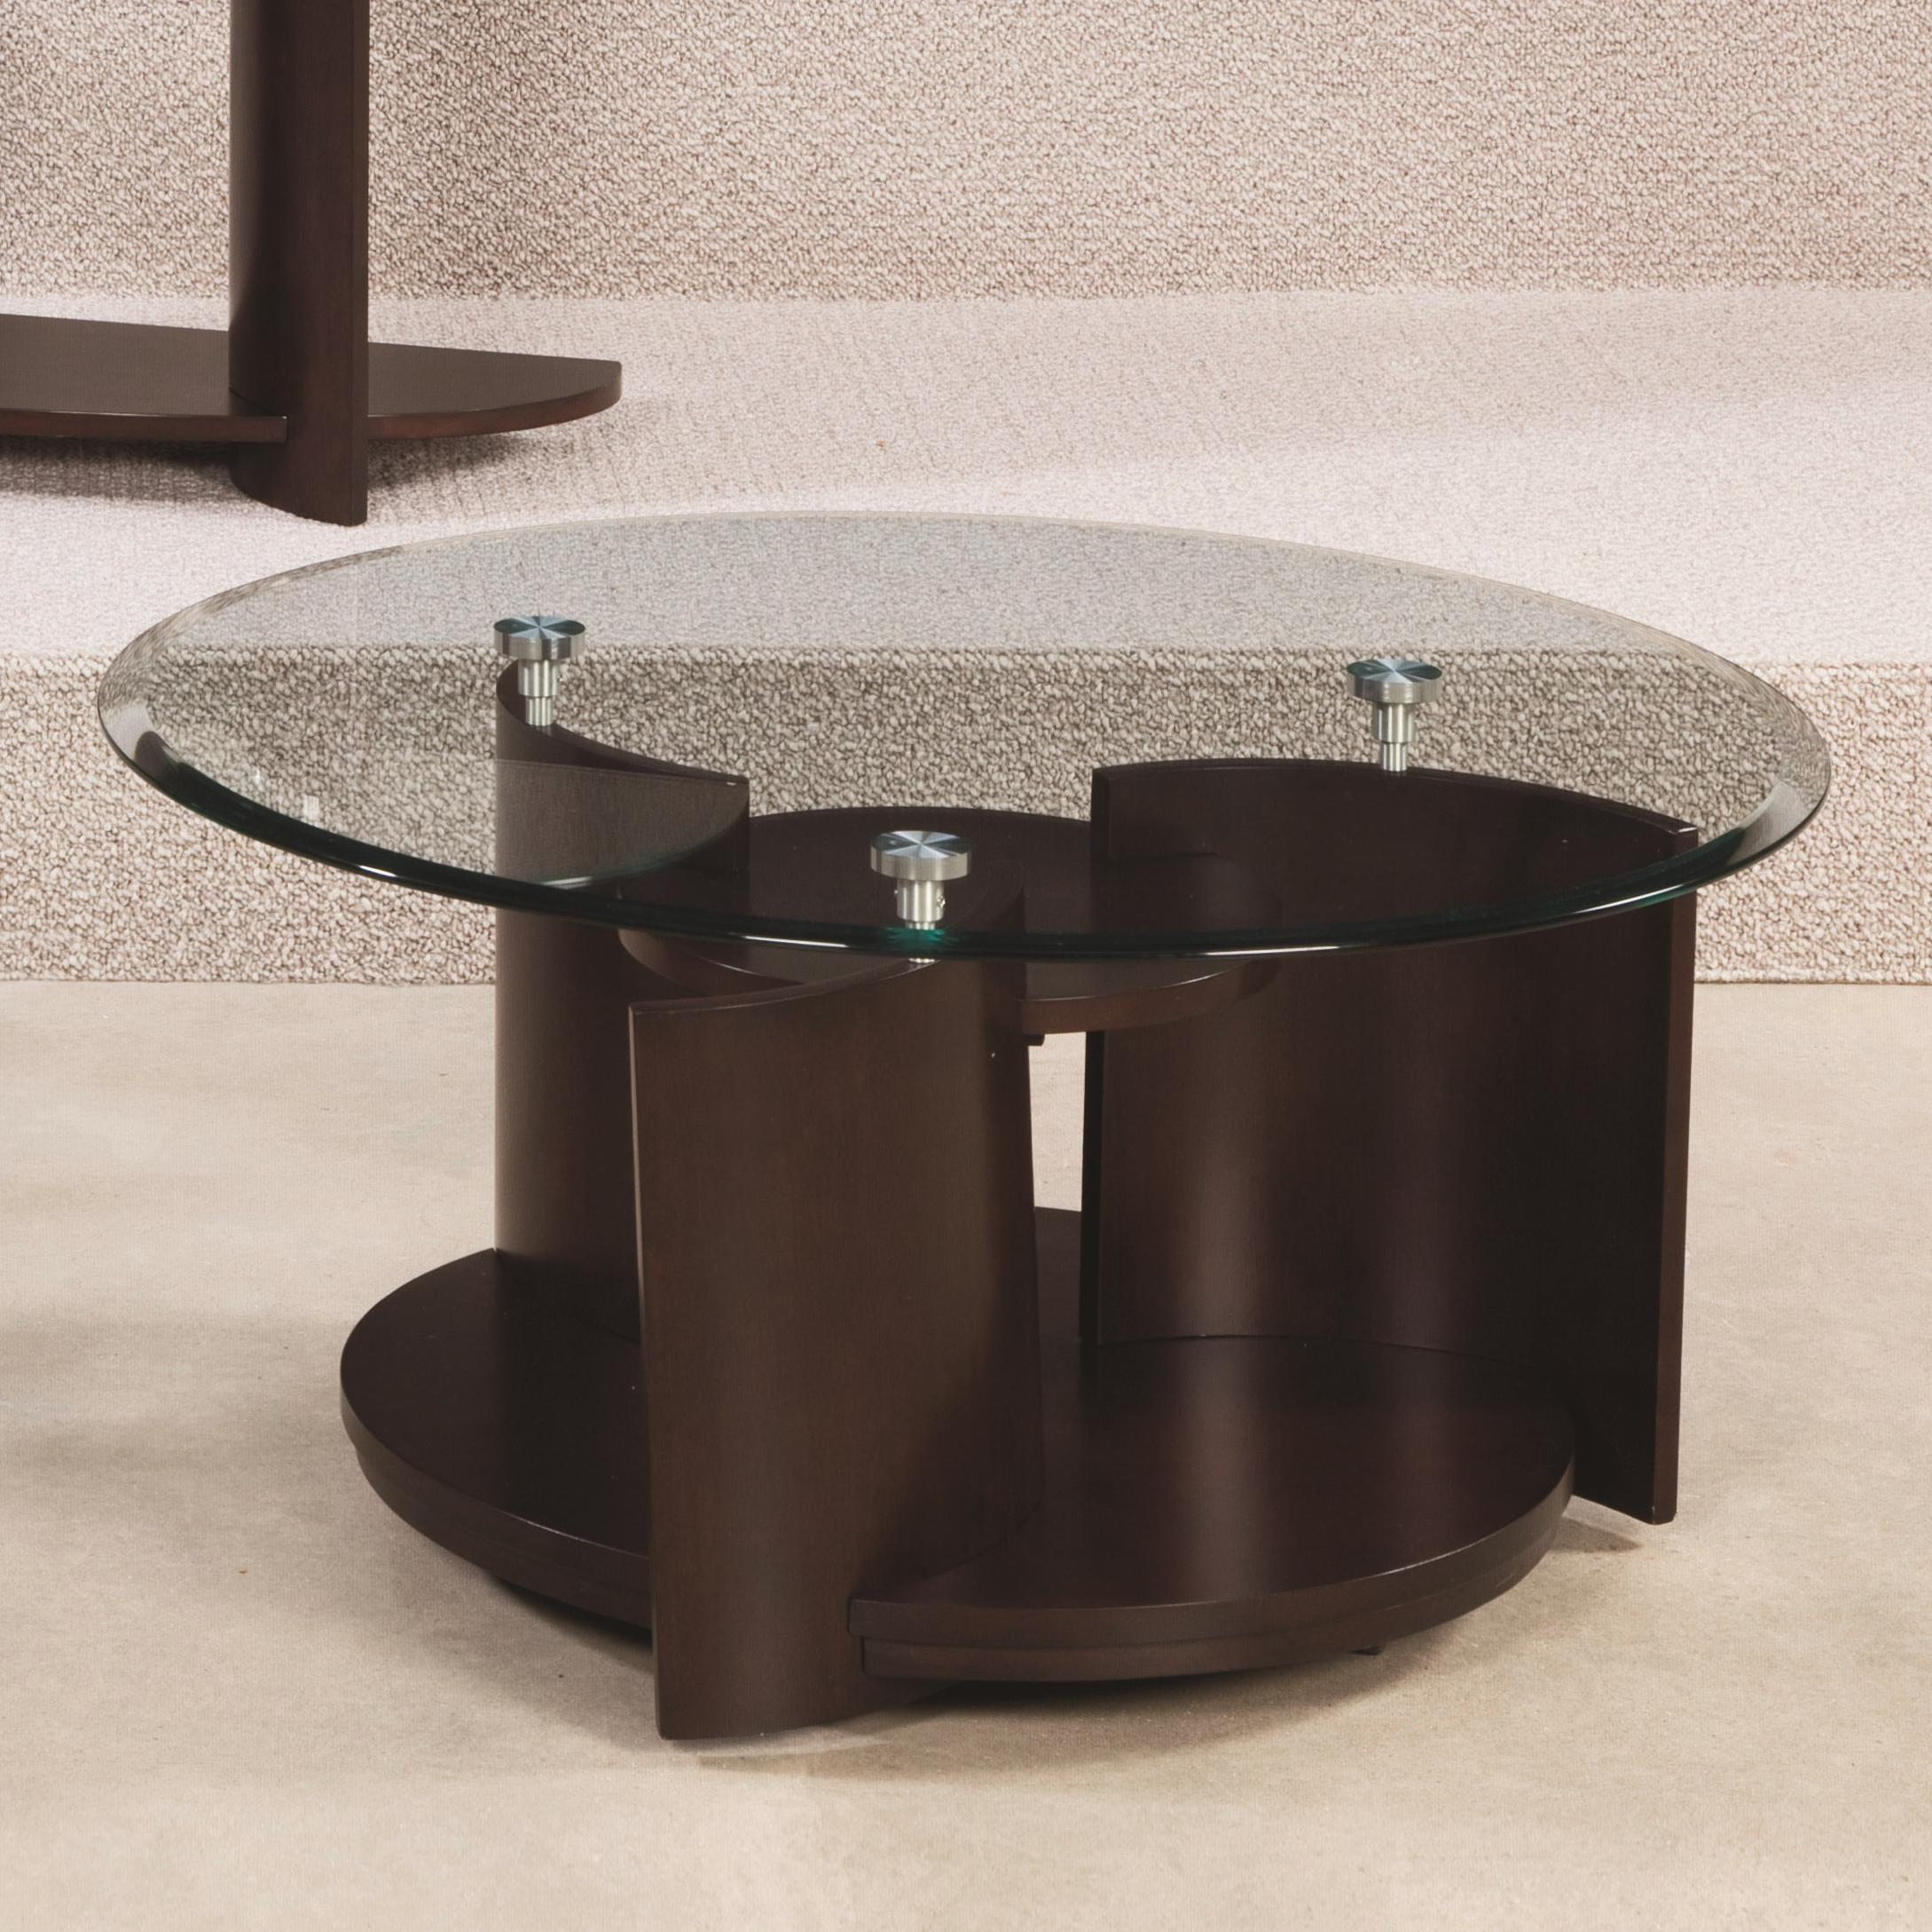 Hammary Apex Round Cocktail Table - Item Number: 105-911